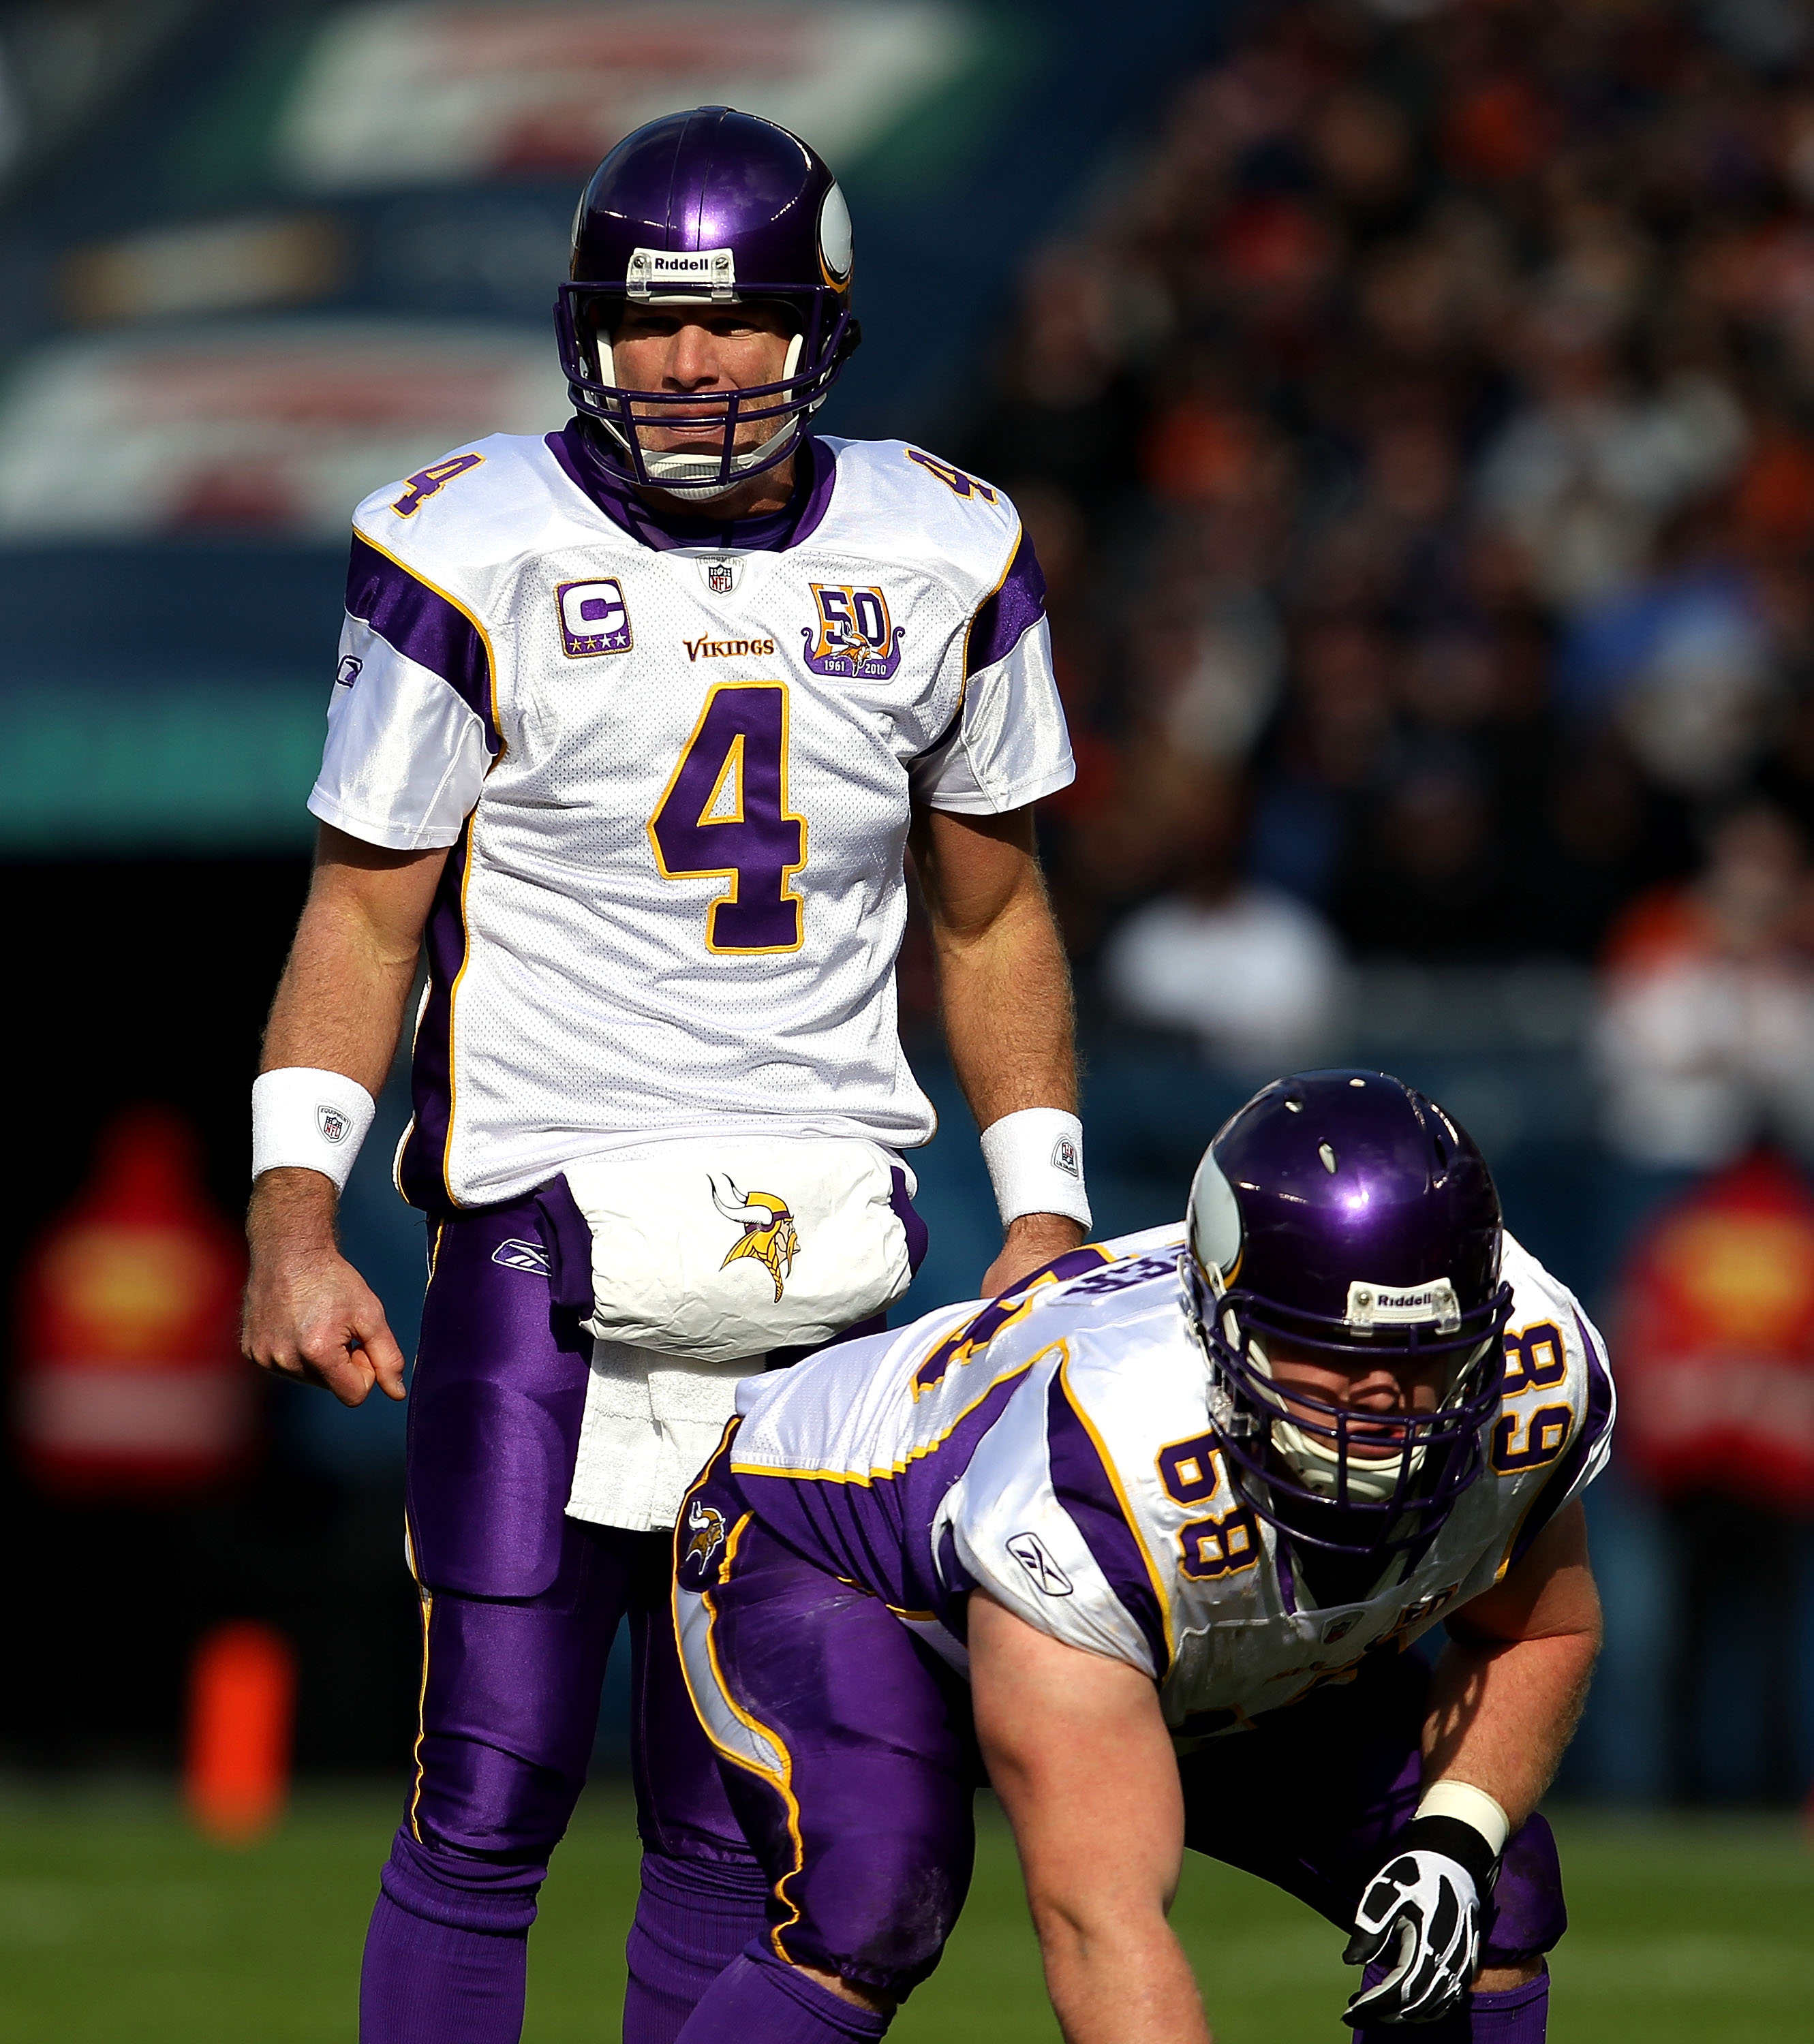 Wholesale Brett Favre: Why Awful 2010 Play Hurts His Legacy More Than Jenn